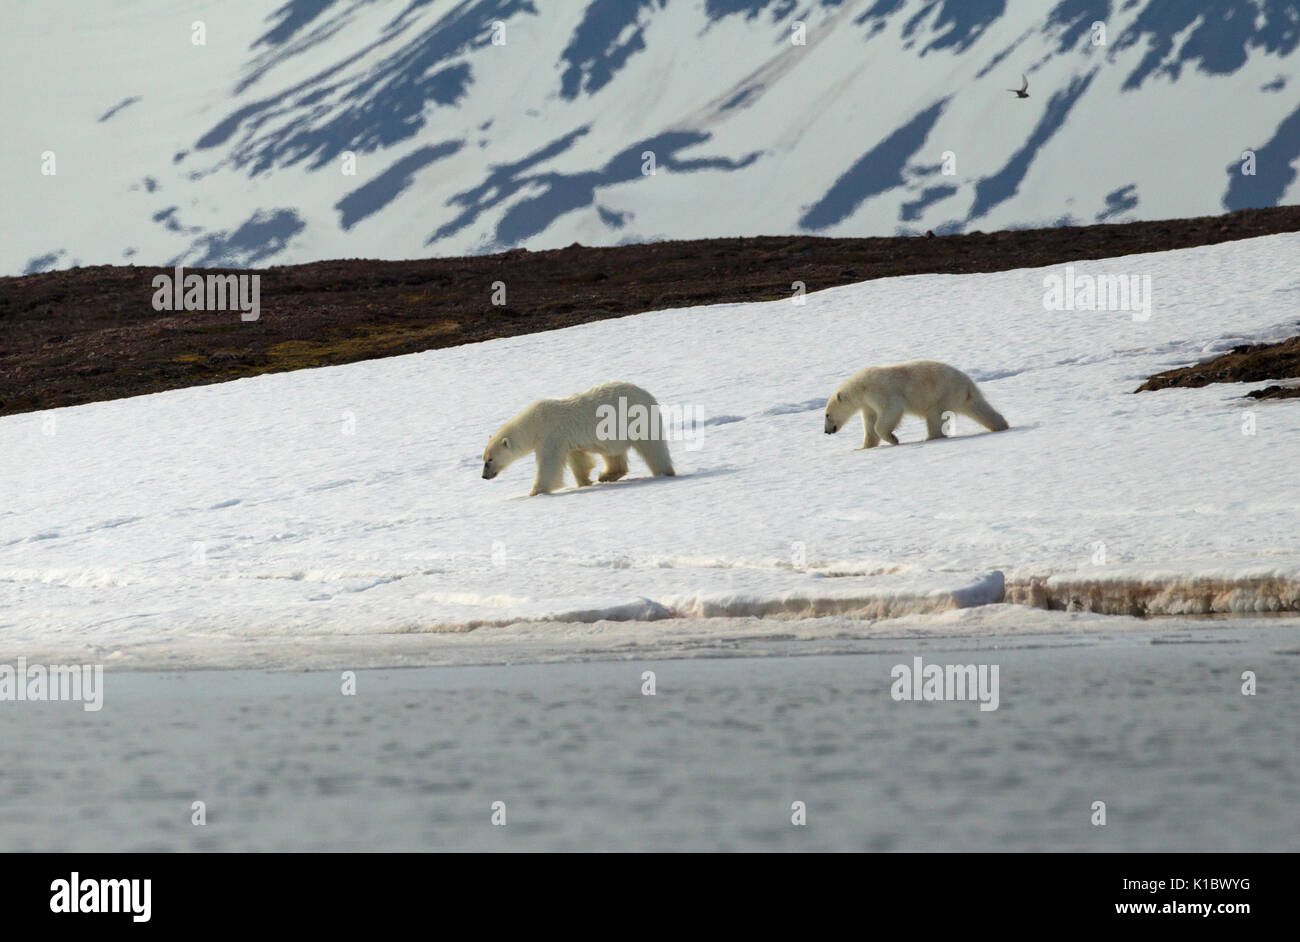 Polar Bears, Ursus maritimus, hungry adult female and cub searching for food near shoreline. Taken in June, Spitsbergen, Svalbard, Norway - Stock Image